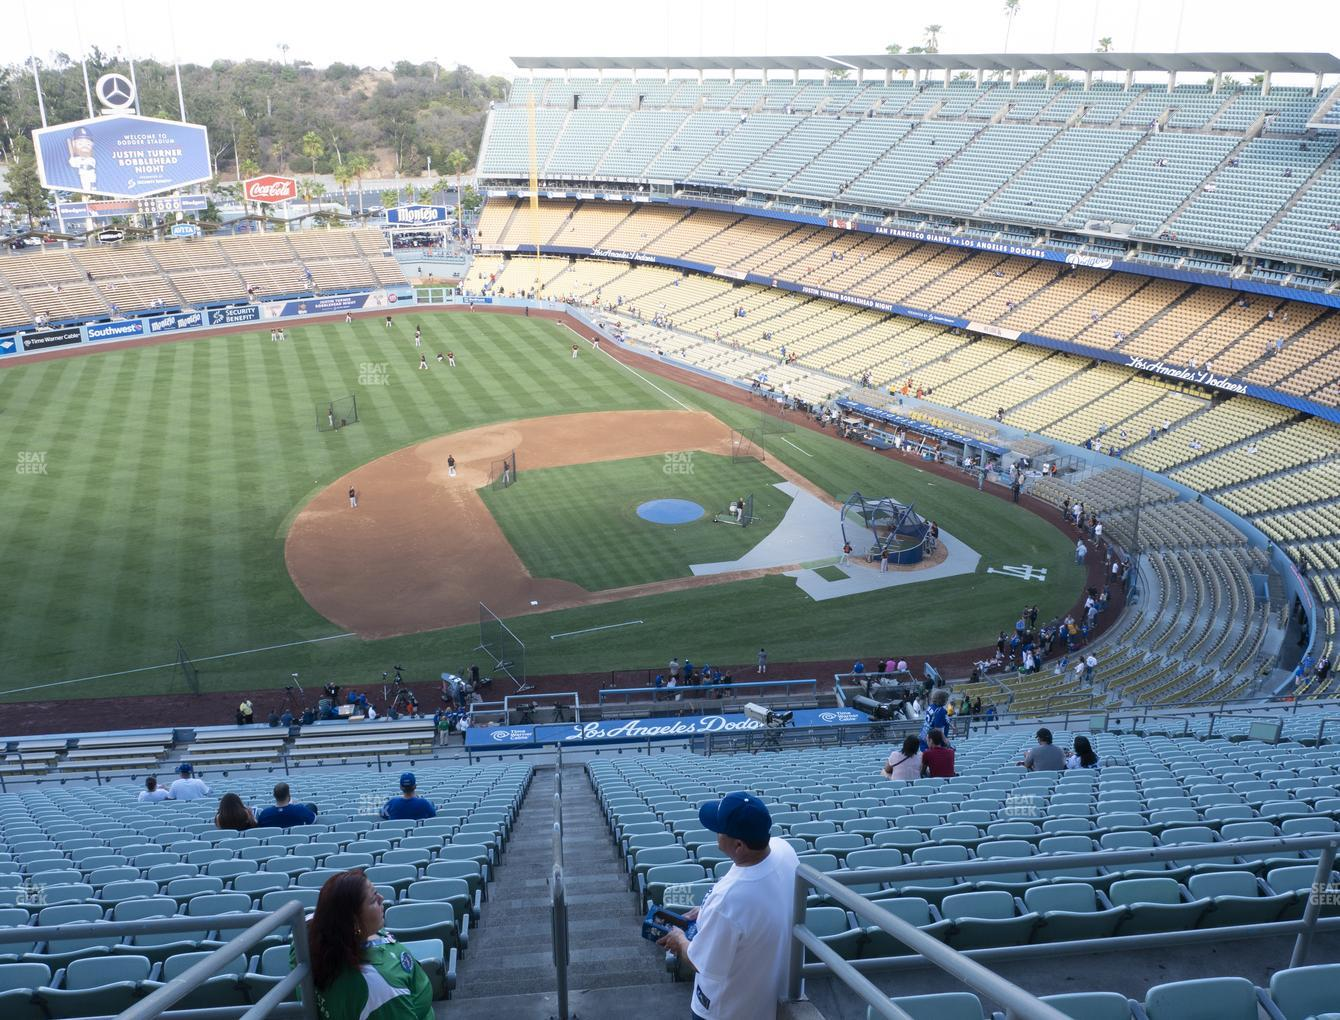 Los Angeles Dodgers at Dodger Stadium Reserve 21 View